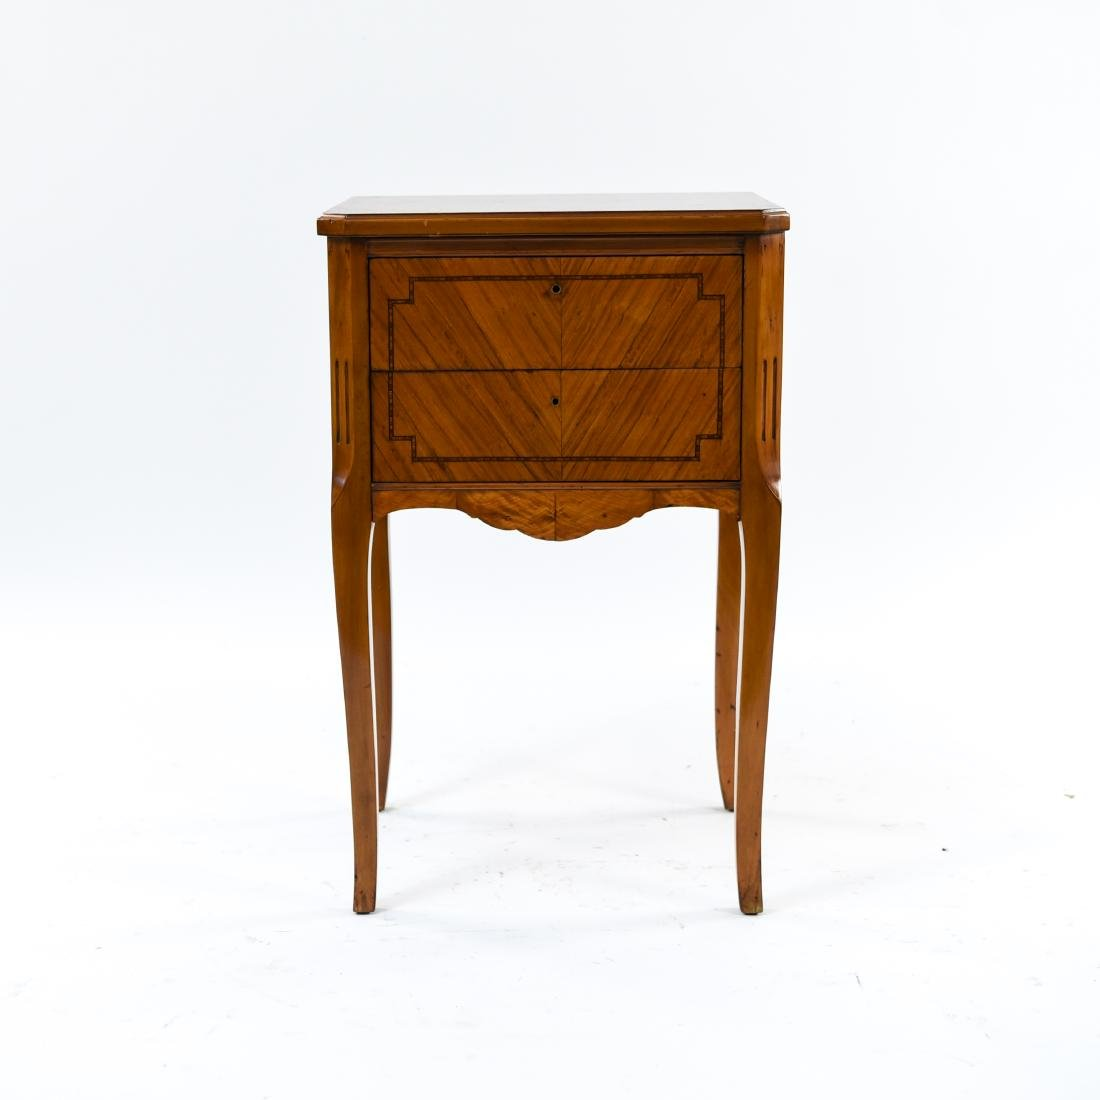 ANTIQUE FRENCH END TABLE STAND